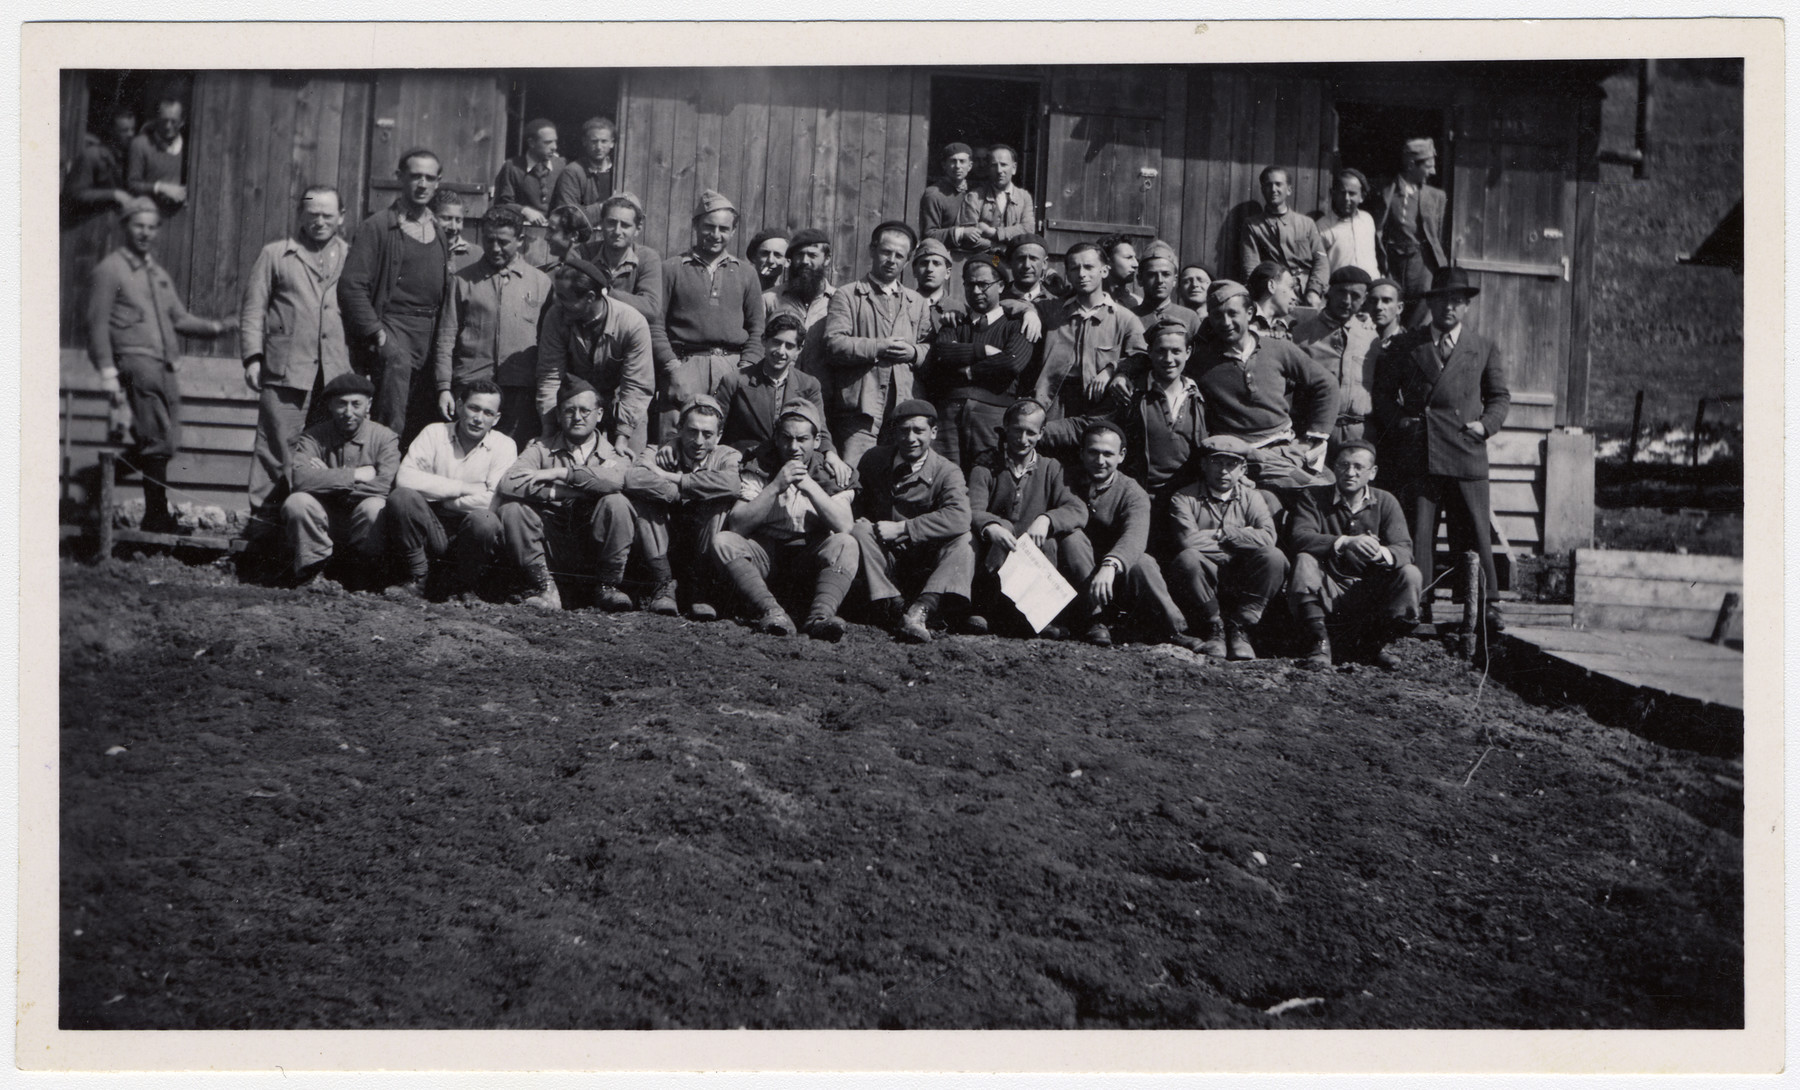 Group portrait of Jewish internees in an unidentified Swiss labor camp.  Max Schattner is standing in the middle with a black cap and light jacket, clasping his hands in front of his chest.